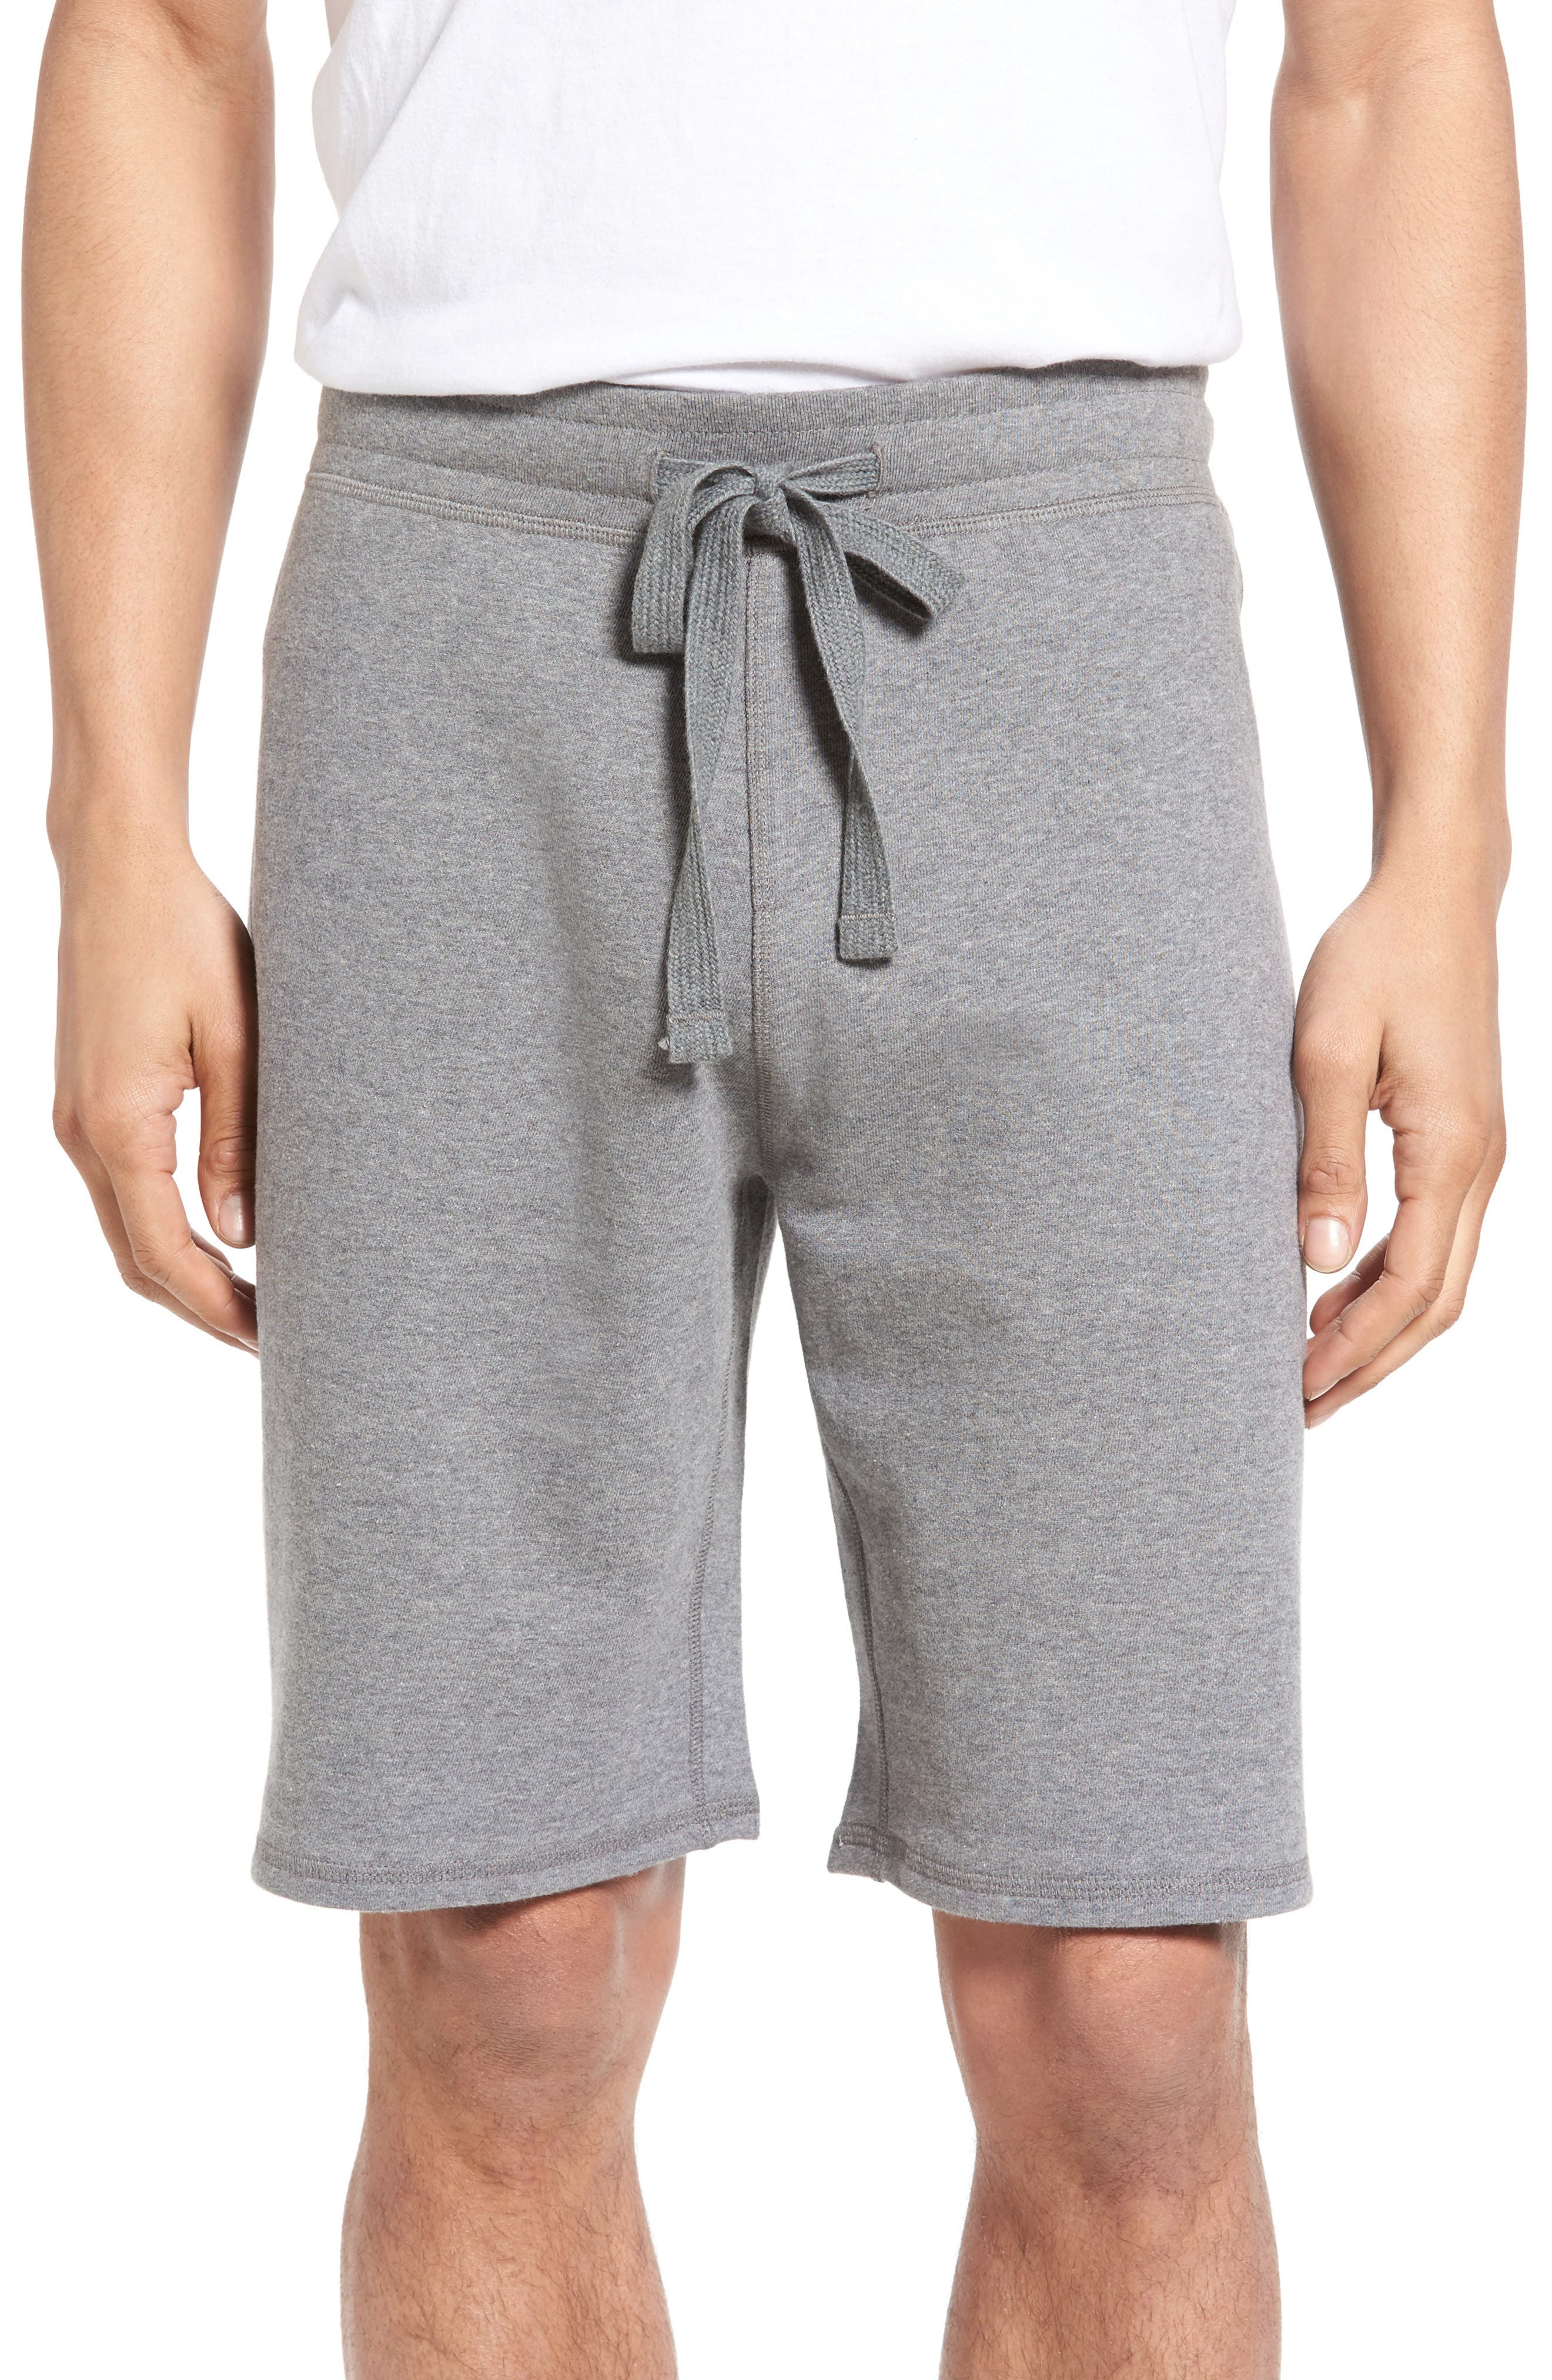 Alternate Image 1 Selected - Tailor Vintage Reversible French Terry Sweat Shorts